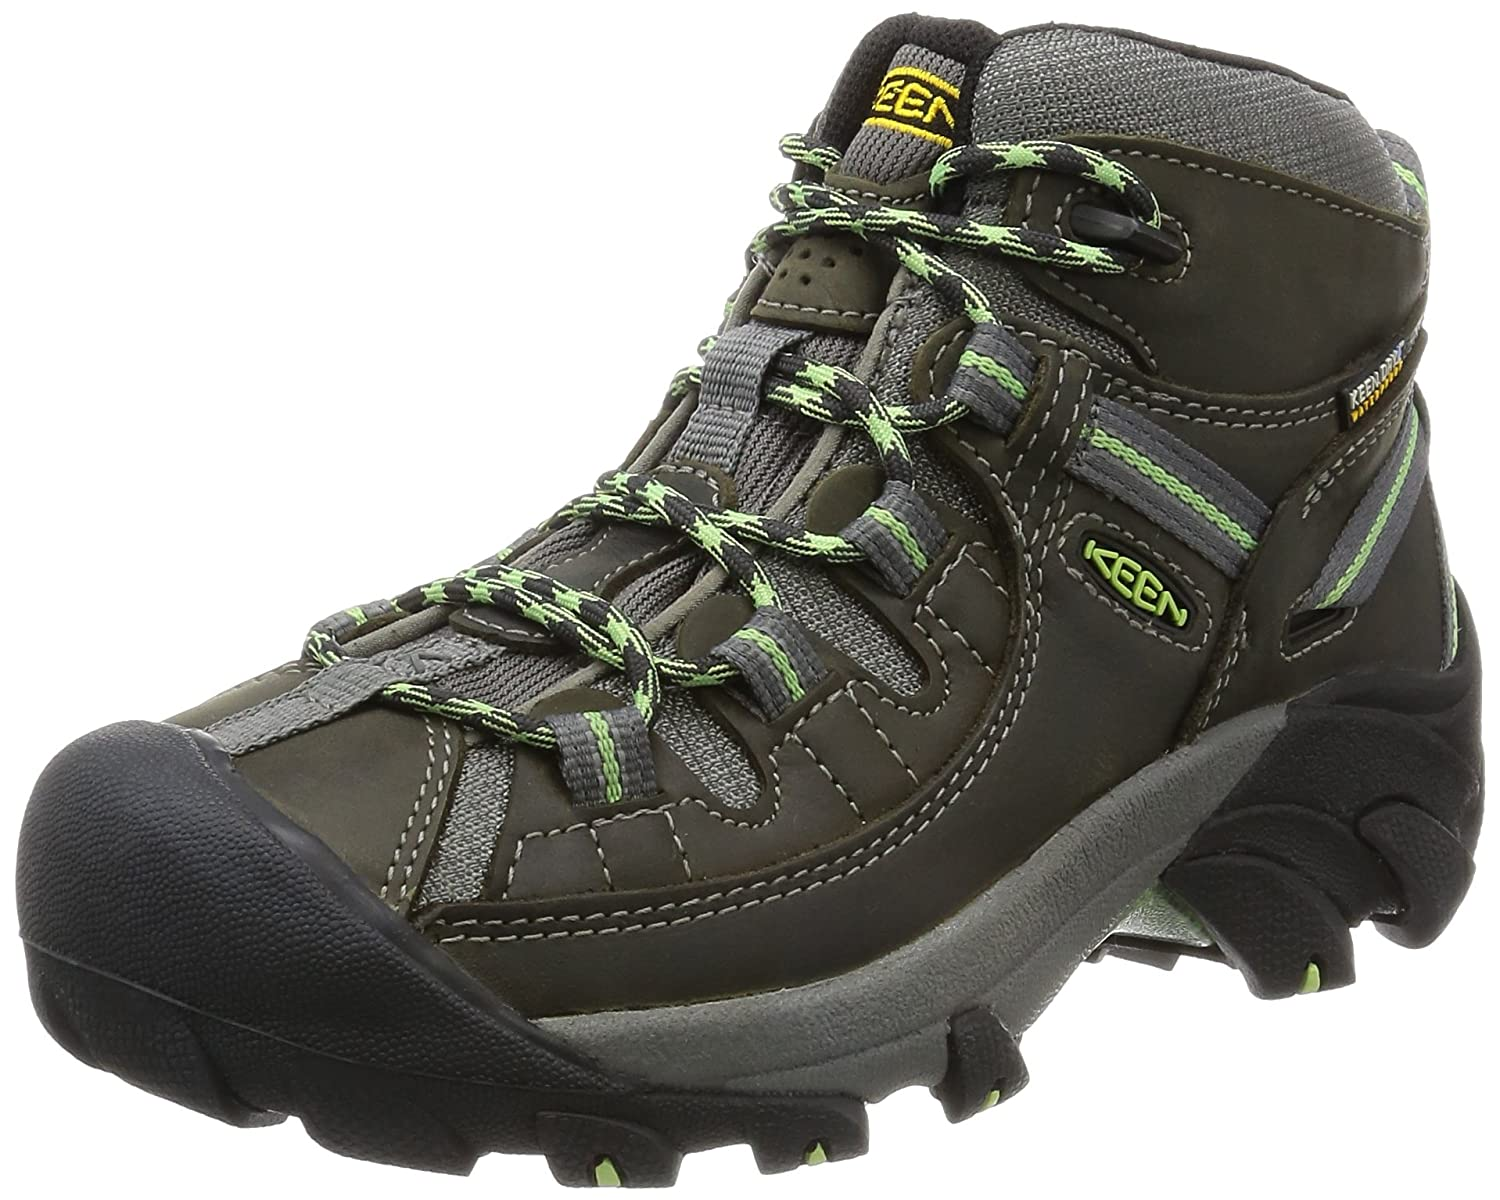 44ede751033 Amazon.com | KEEN Women's Targhee II Mid Waterproof Boot, Raven ...